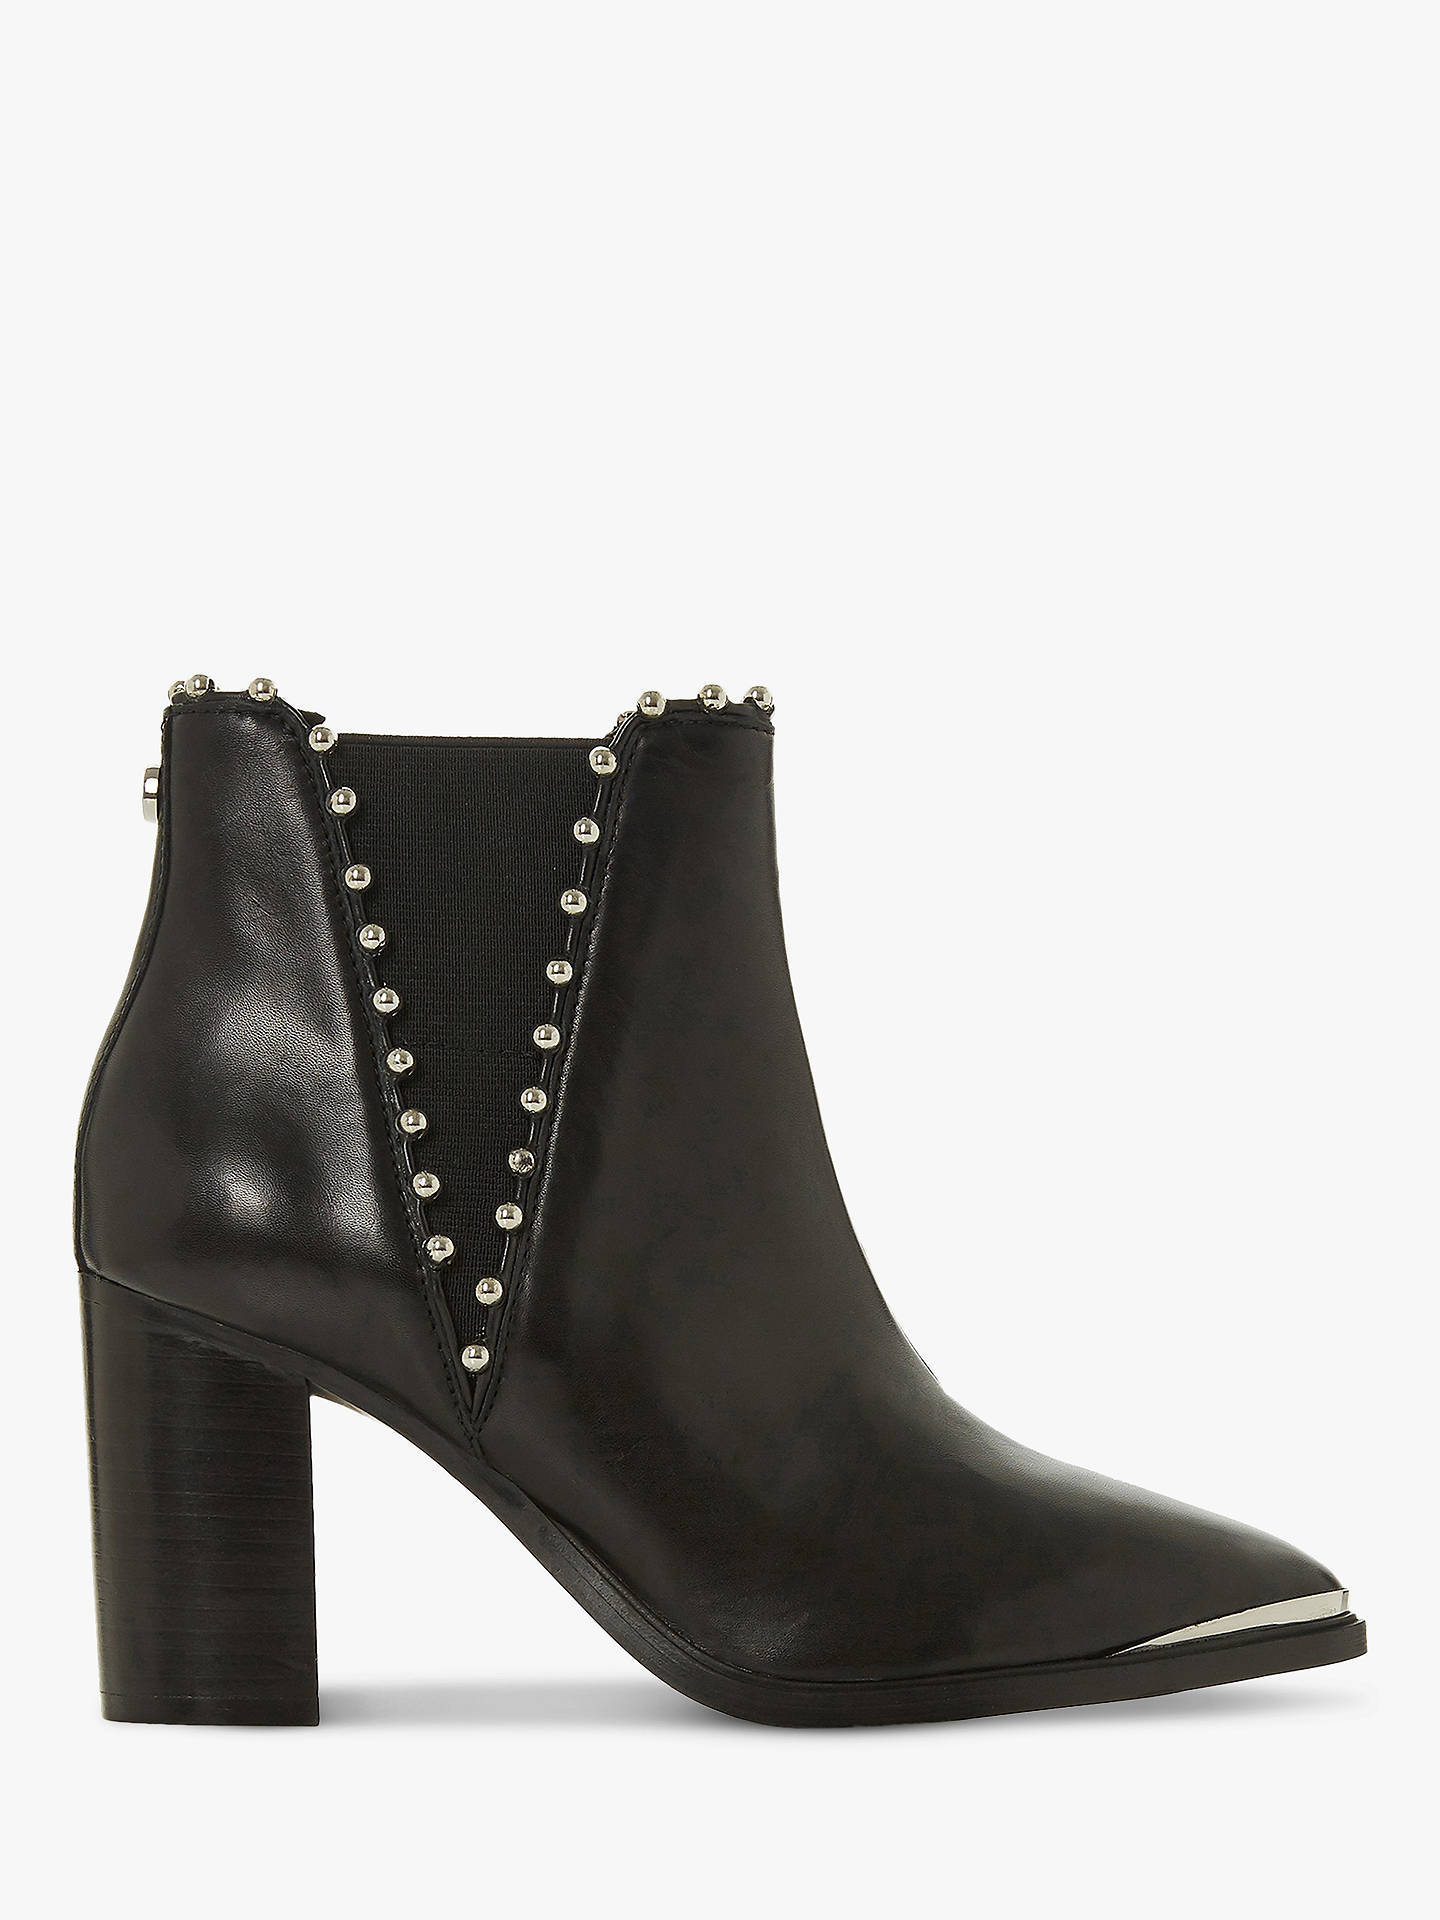 BuySteve Madden Himmer Beaded Ankle Boots, Black Leather, 3 Online at johnlewis.com